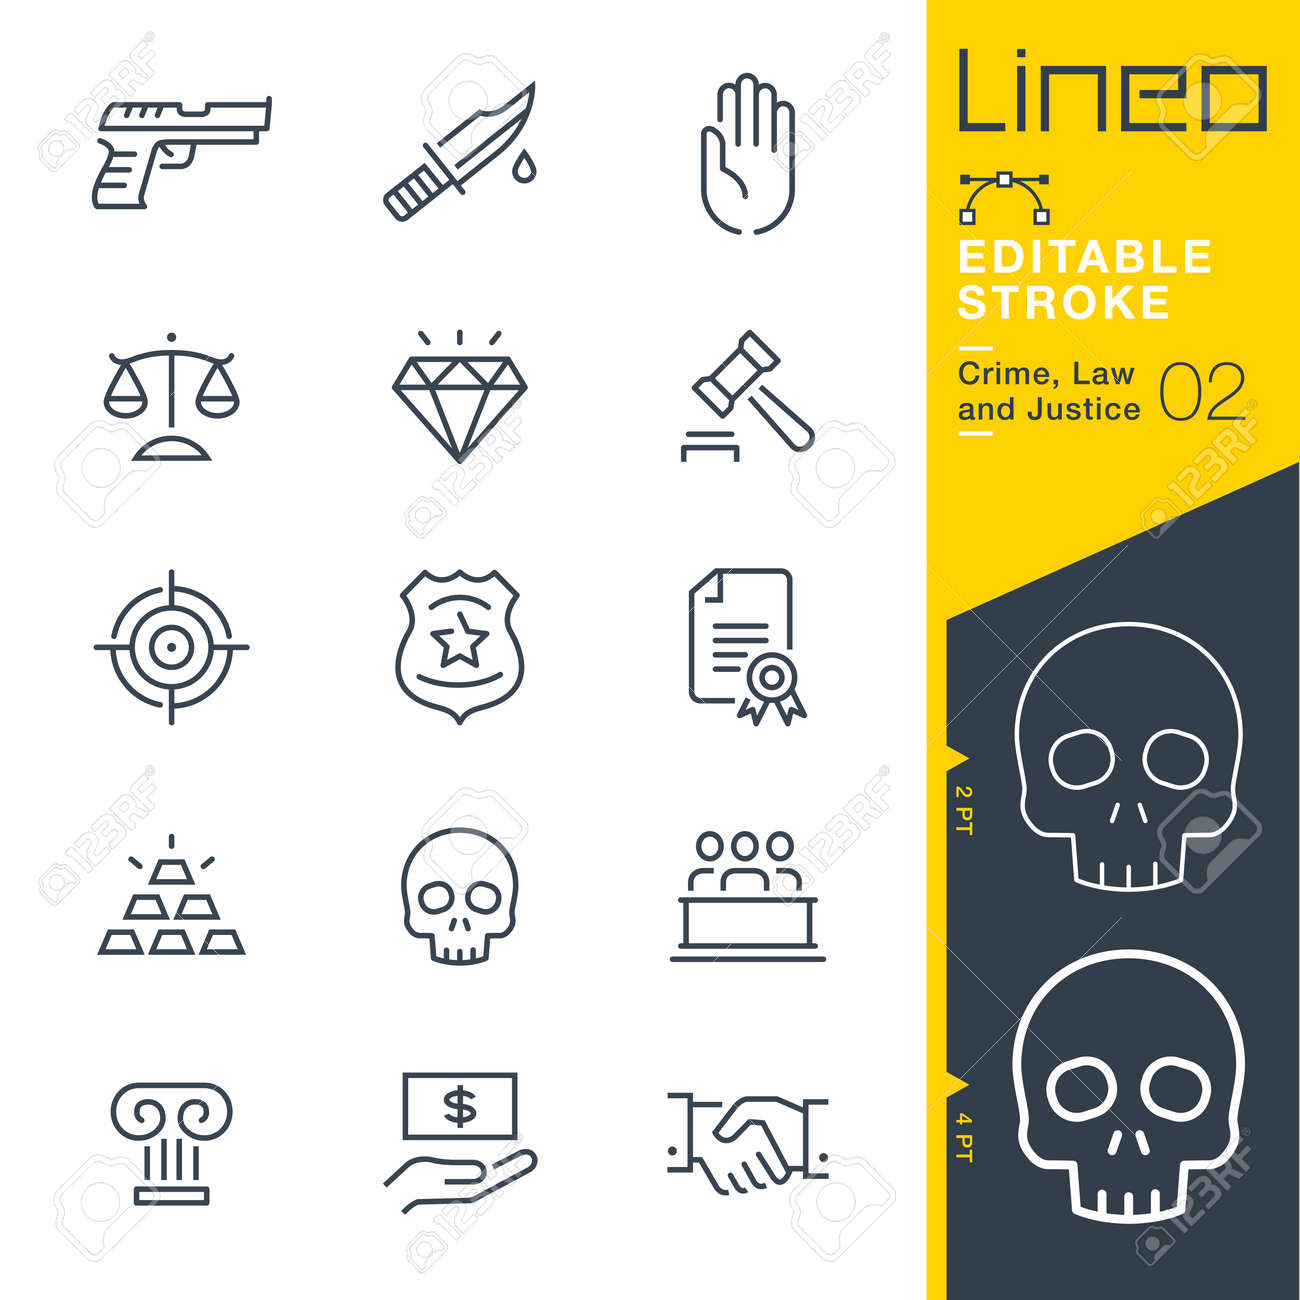 Lineo Editable Stroke - Crime, Law and Justice line icon Vector Icons - Adjust stroke weight - Change to any color - 87049478